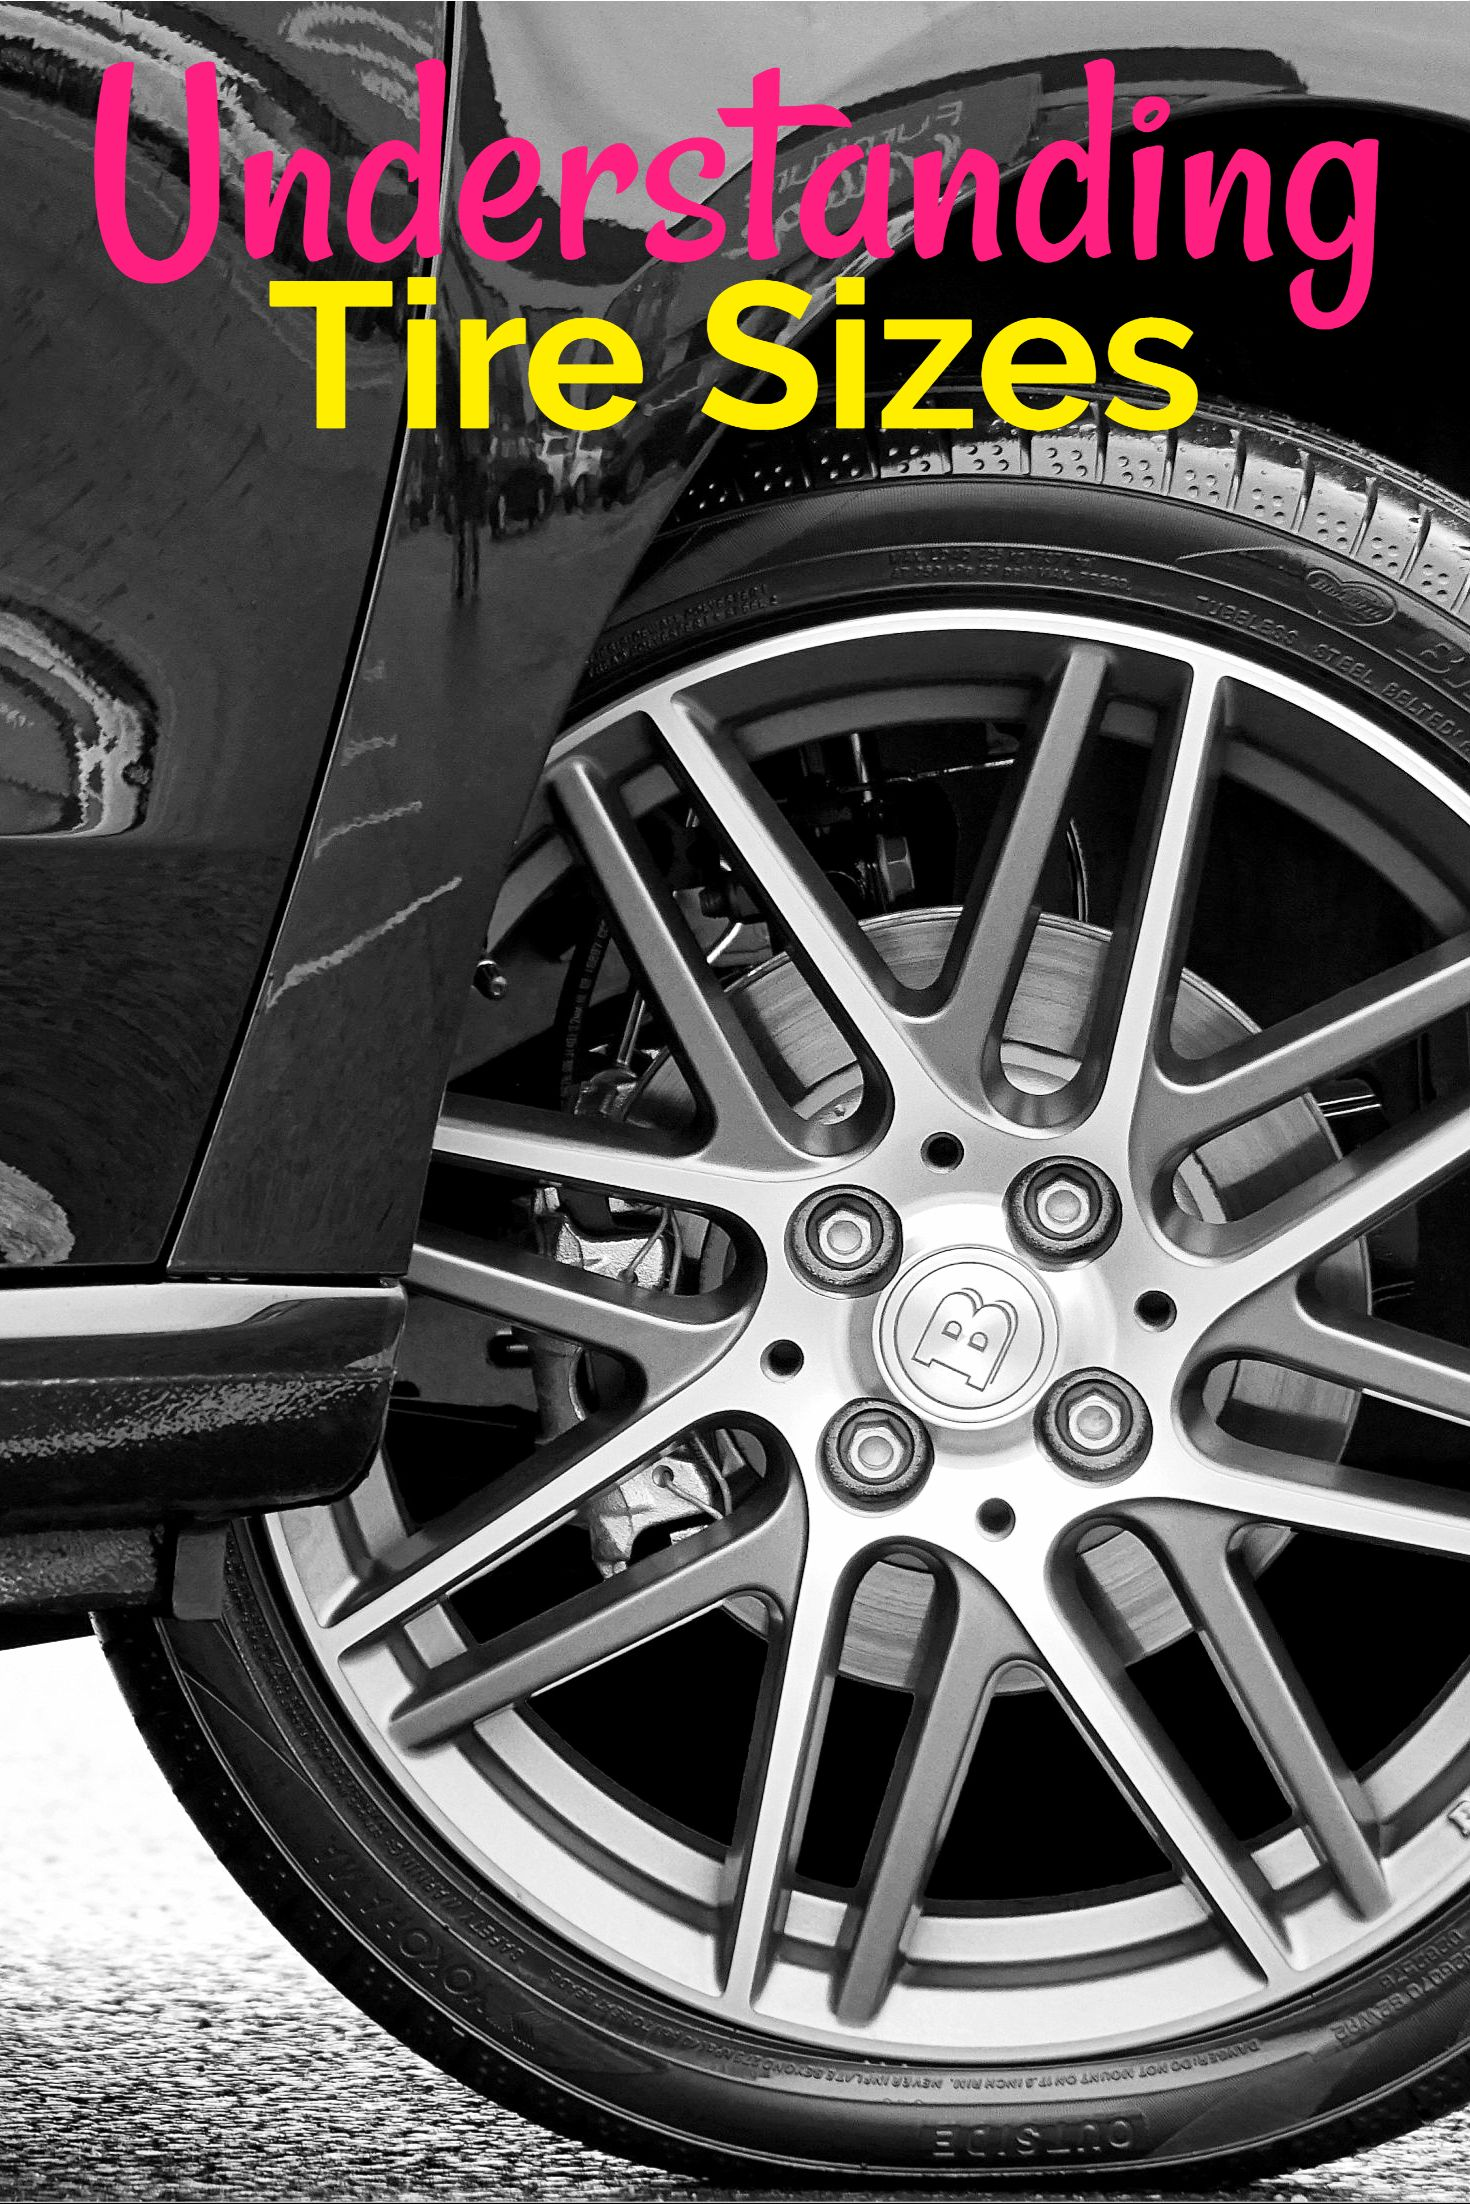 Understanding Tire Sizes Tire Buyers Guide Tyre Size Car Mechanic Tire